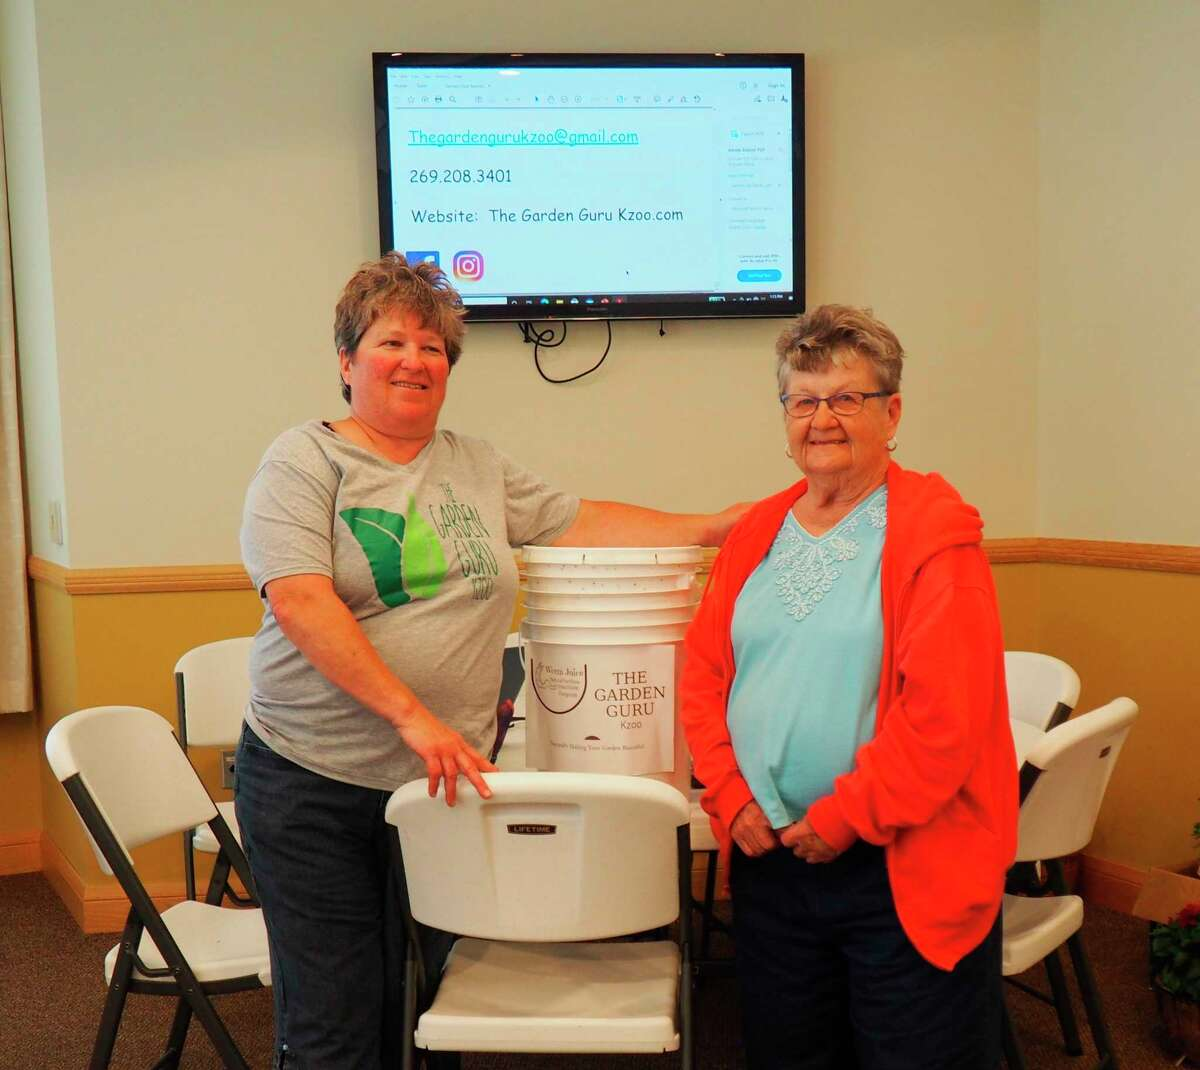 Alysia Babcock, Garden Guru Kzoo, and her assistant, Phyllis Babcock, were presentat the June 14 meeting of the Spirit of the Woods Garden Club, Inc.(Courtesy photo)